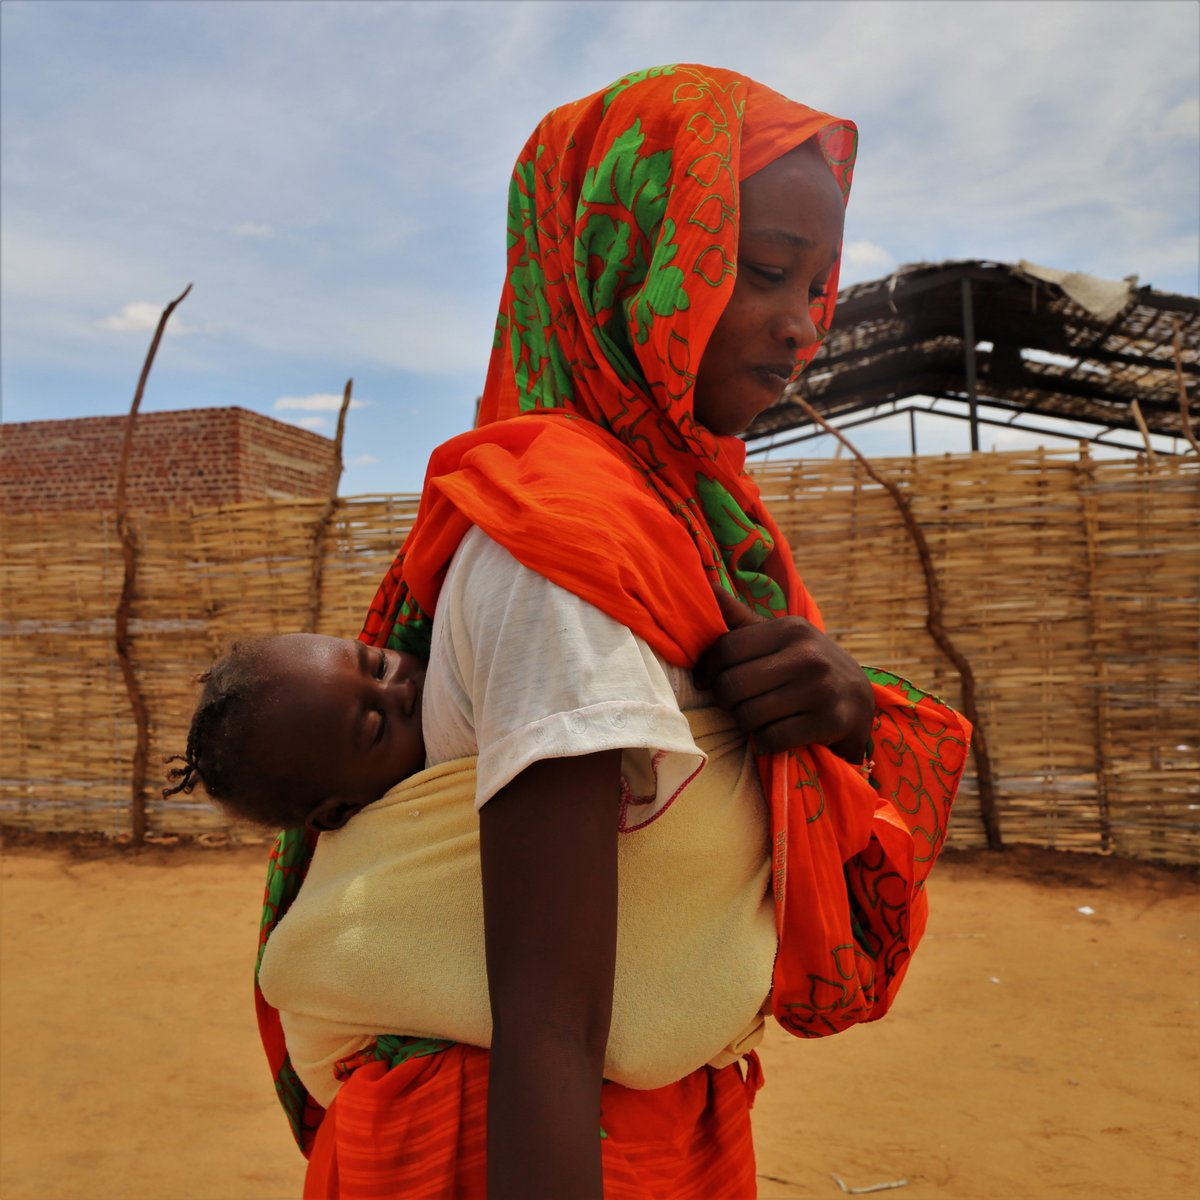 Many people have been living in Otash camp, #Sudan for over a decade, while others arrived last year to escape fighting. Here's what WFP does to support them: 💳 Cash assistance 🌽 Food assistance 🌾 Specialized nutrition for women & children